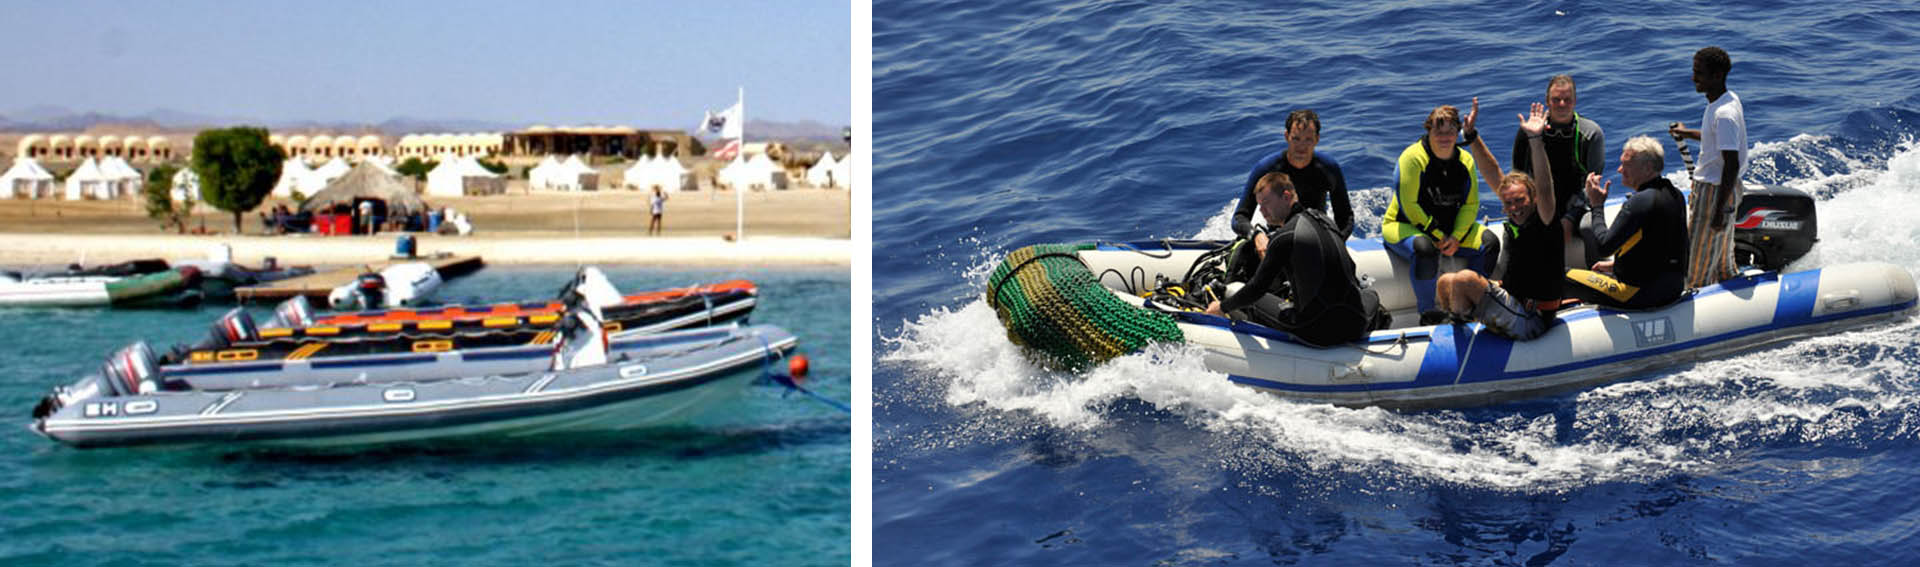 Red sea snorkeling boats